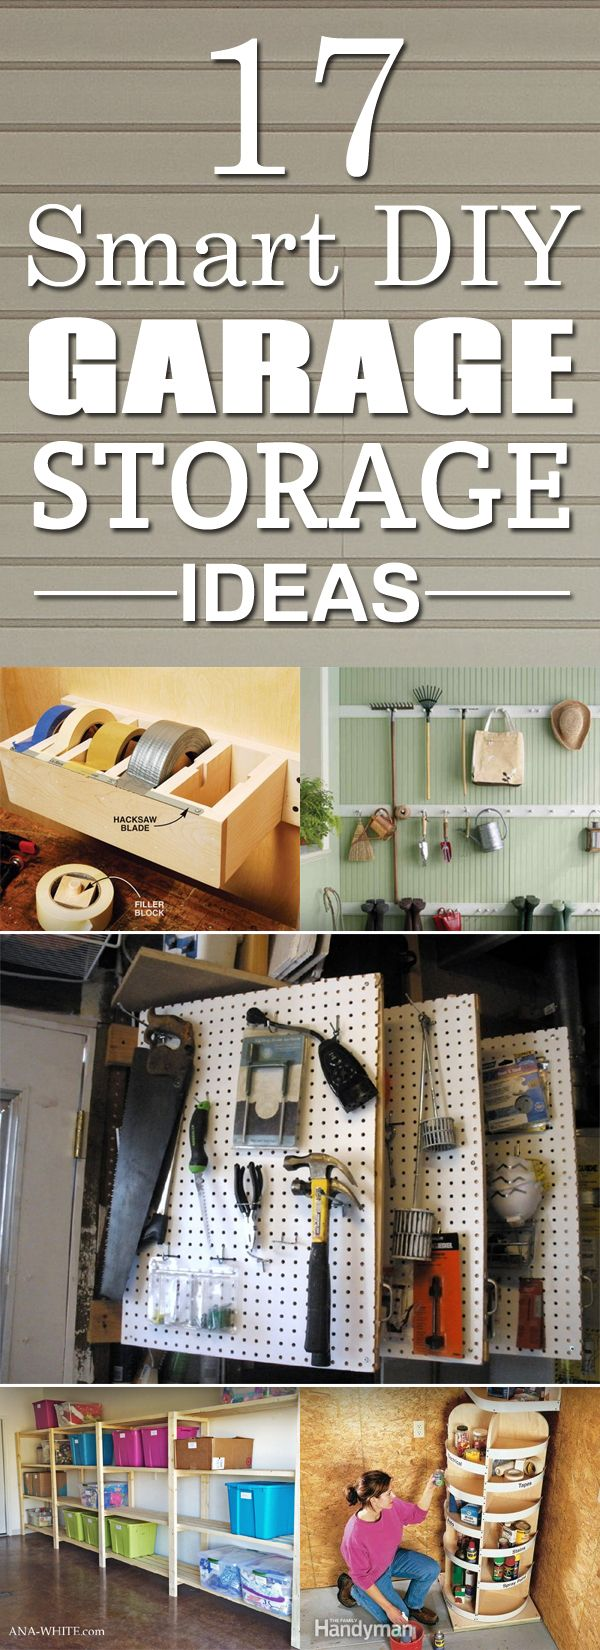 17 Smart DIY Garage Storage Ideas →                                                                                                                                                                                 More